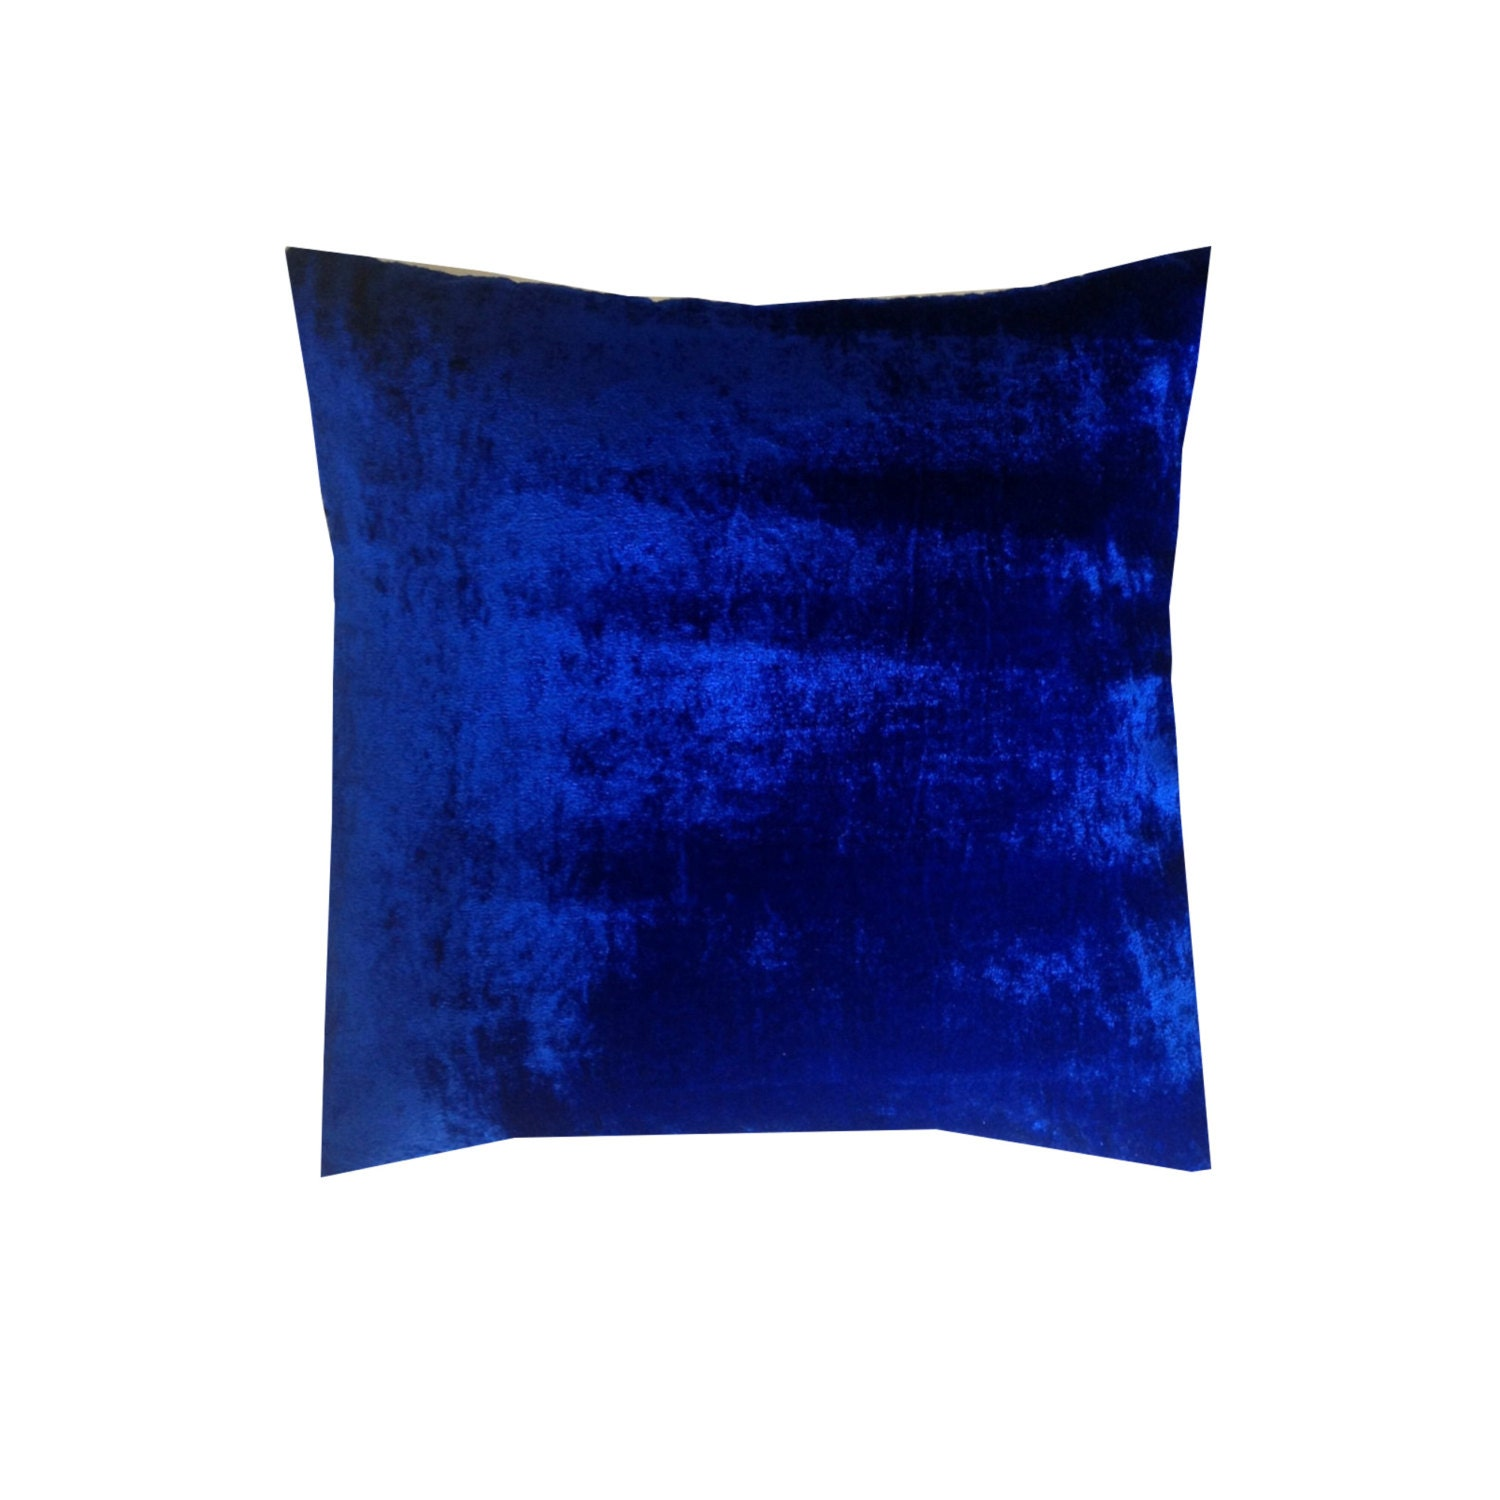 Blue Velvet Pillows Blue Decorative Pillows Velvet sofa